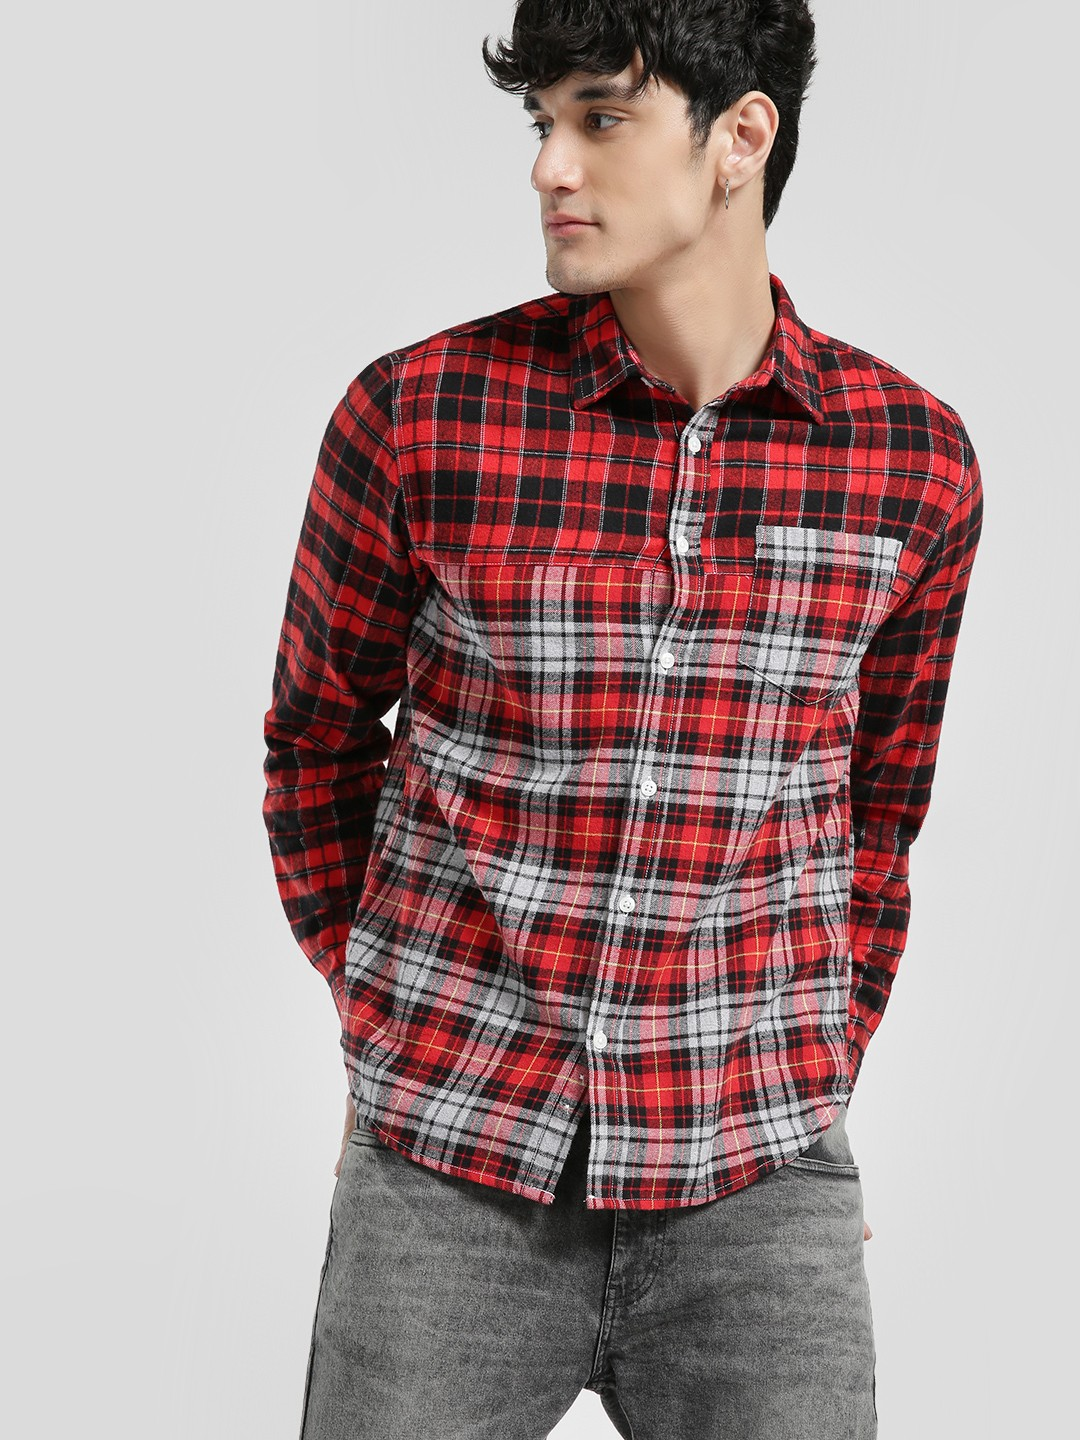 Blue Saint Red Woven Multi-Check Shirt 1